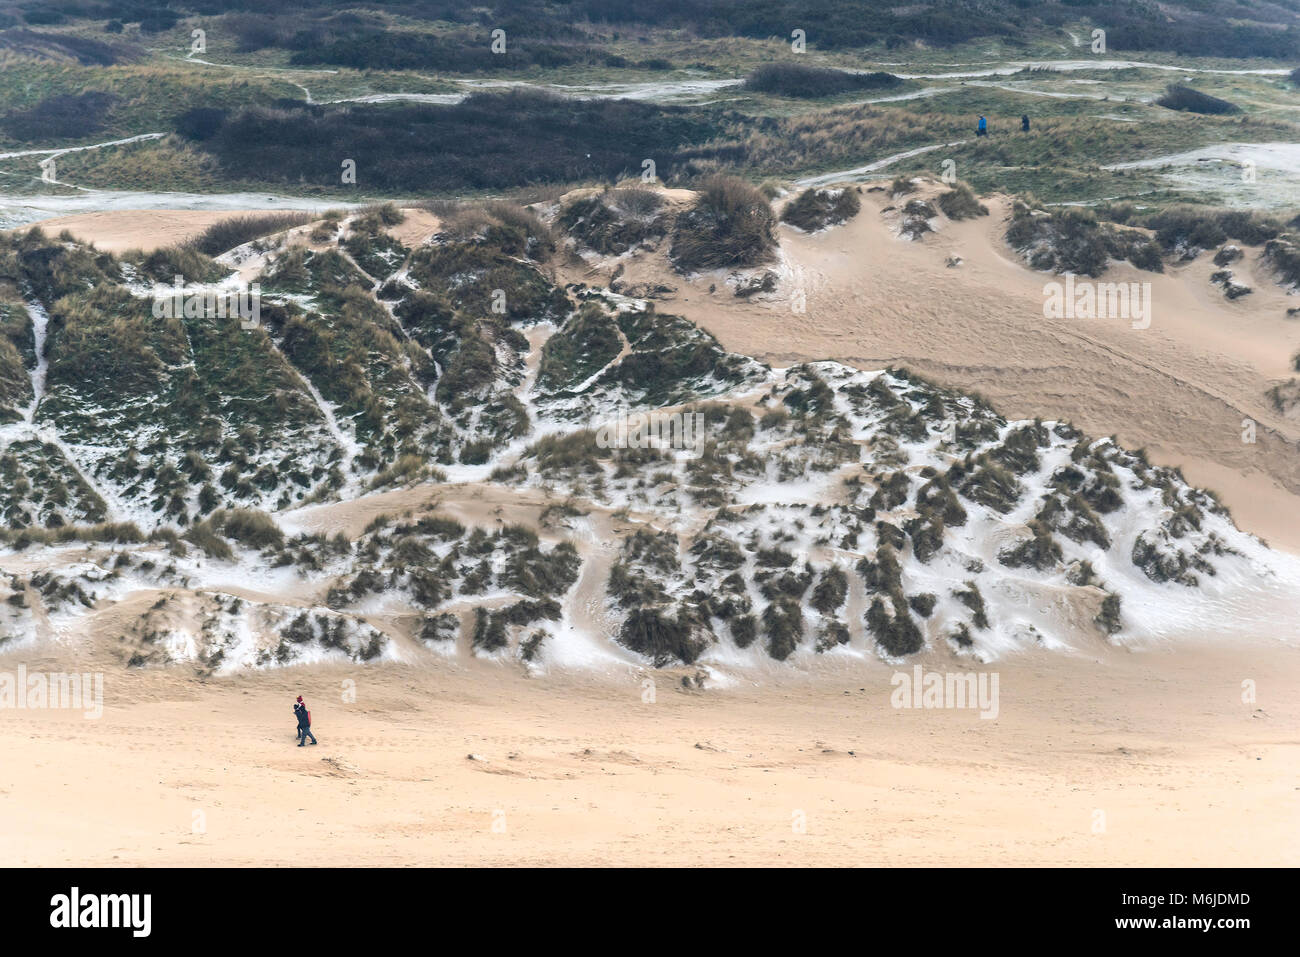 UK weather Snow settling on sand dunes at Crantock Beach in Newquay Cornwall. - Stock Image